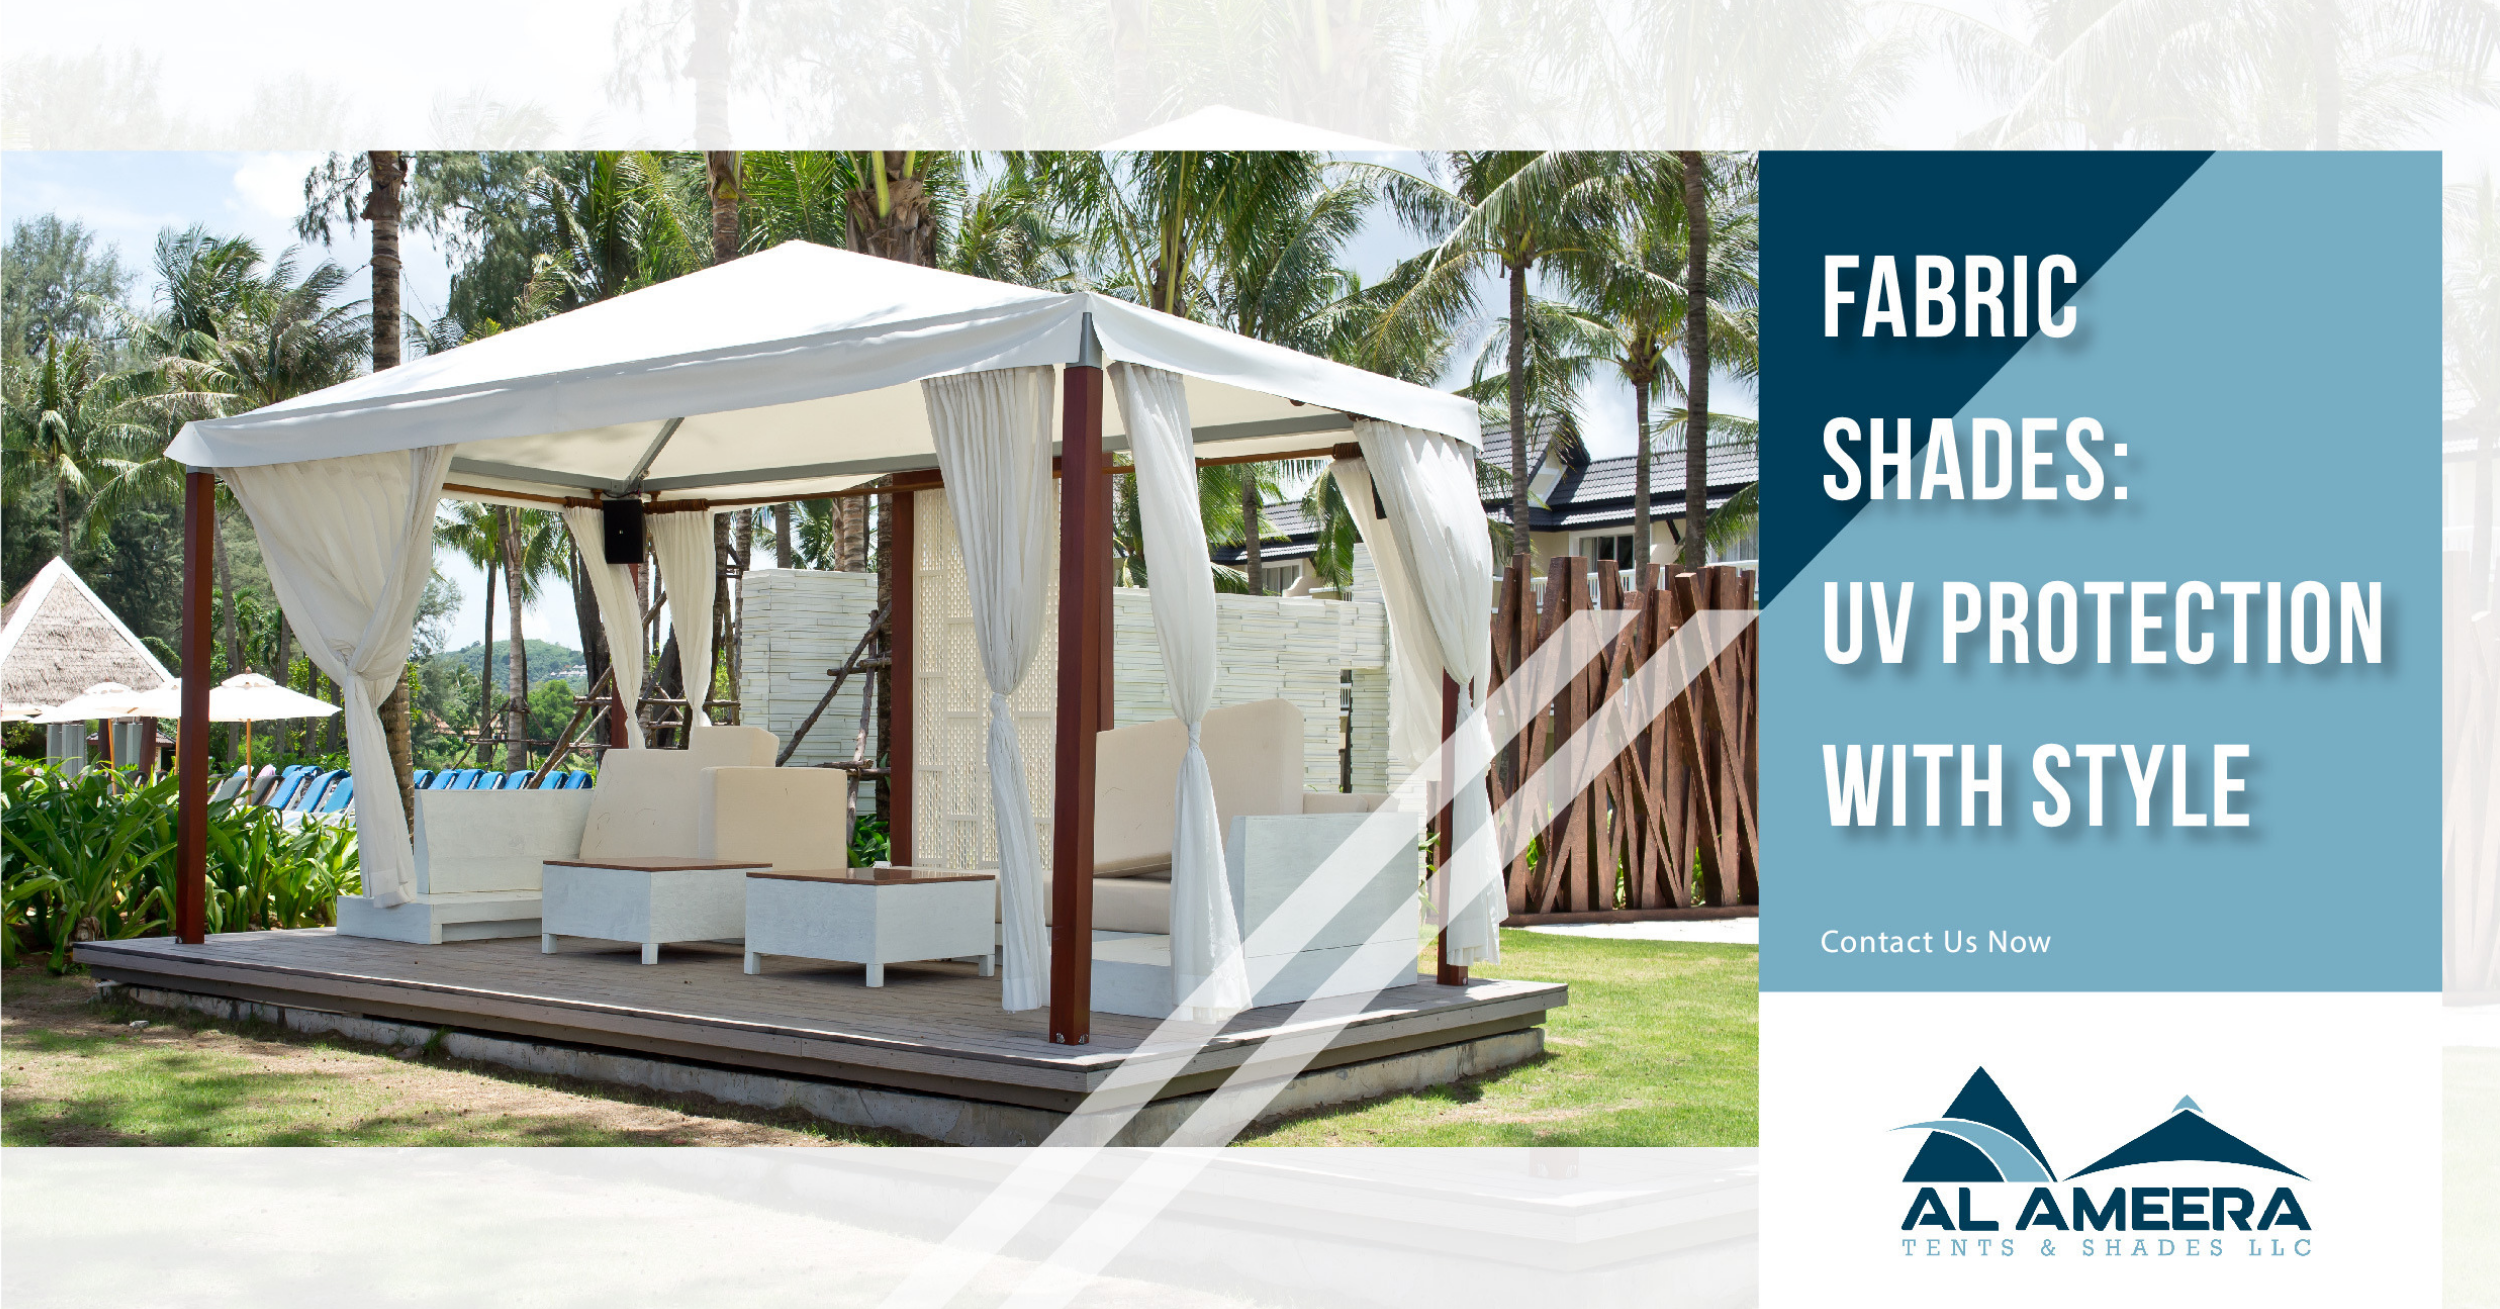 Fabric Shades: UV Protection with Style